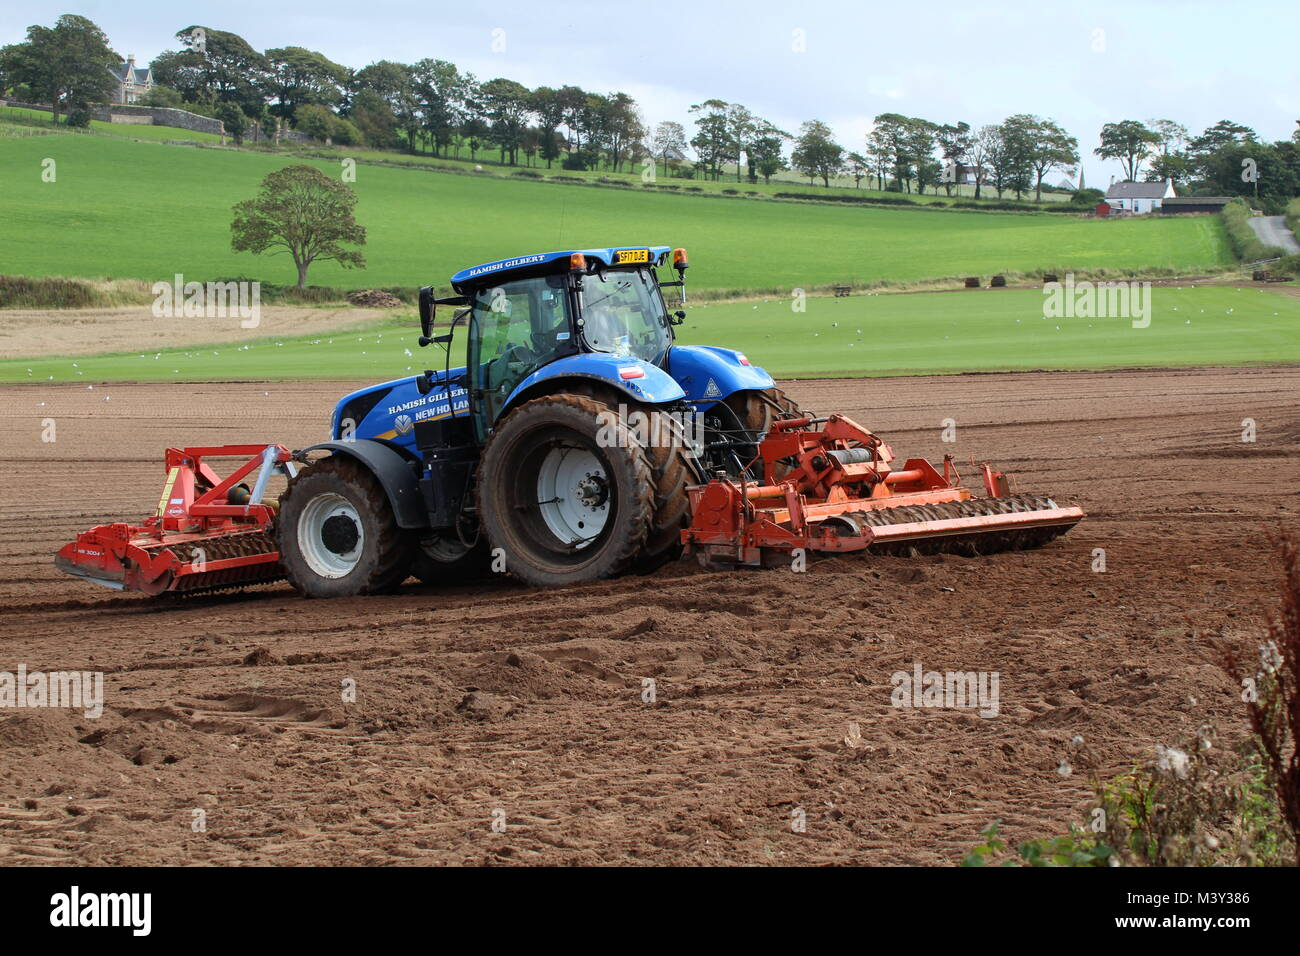 New Holland Tractor Bedding : Bed tilling stock photos images alamy